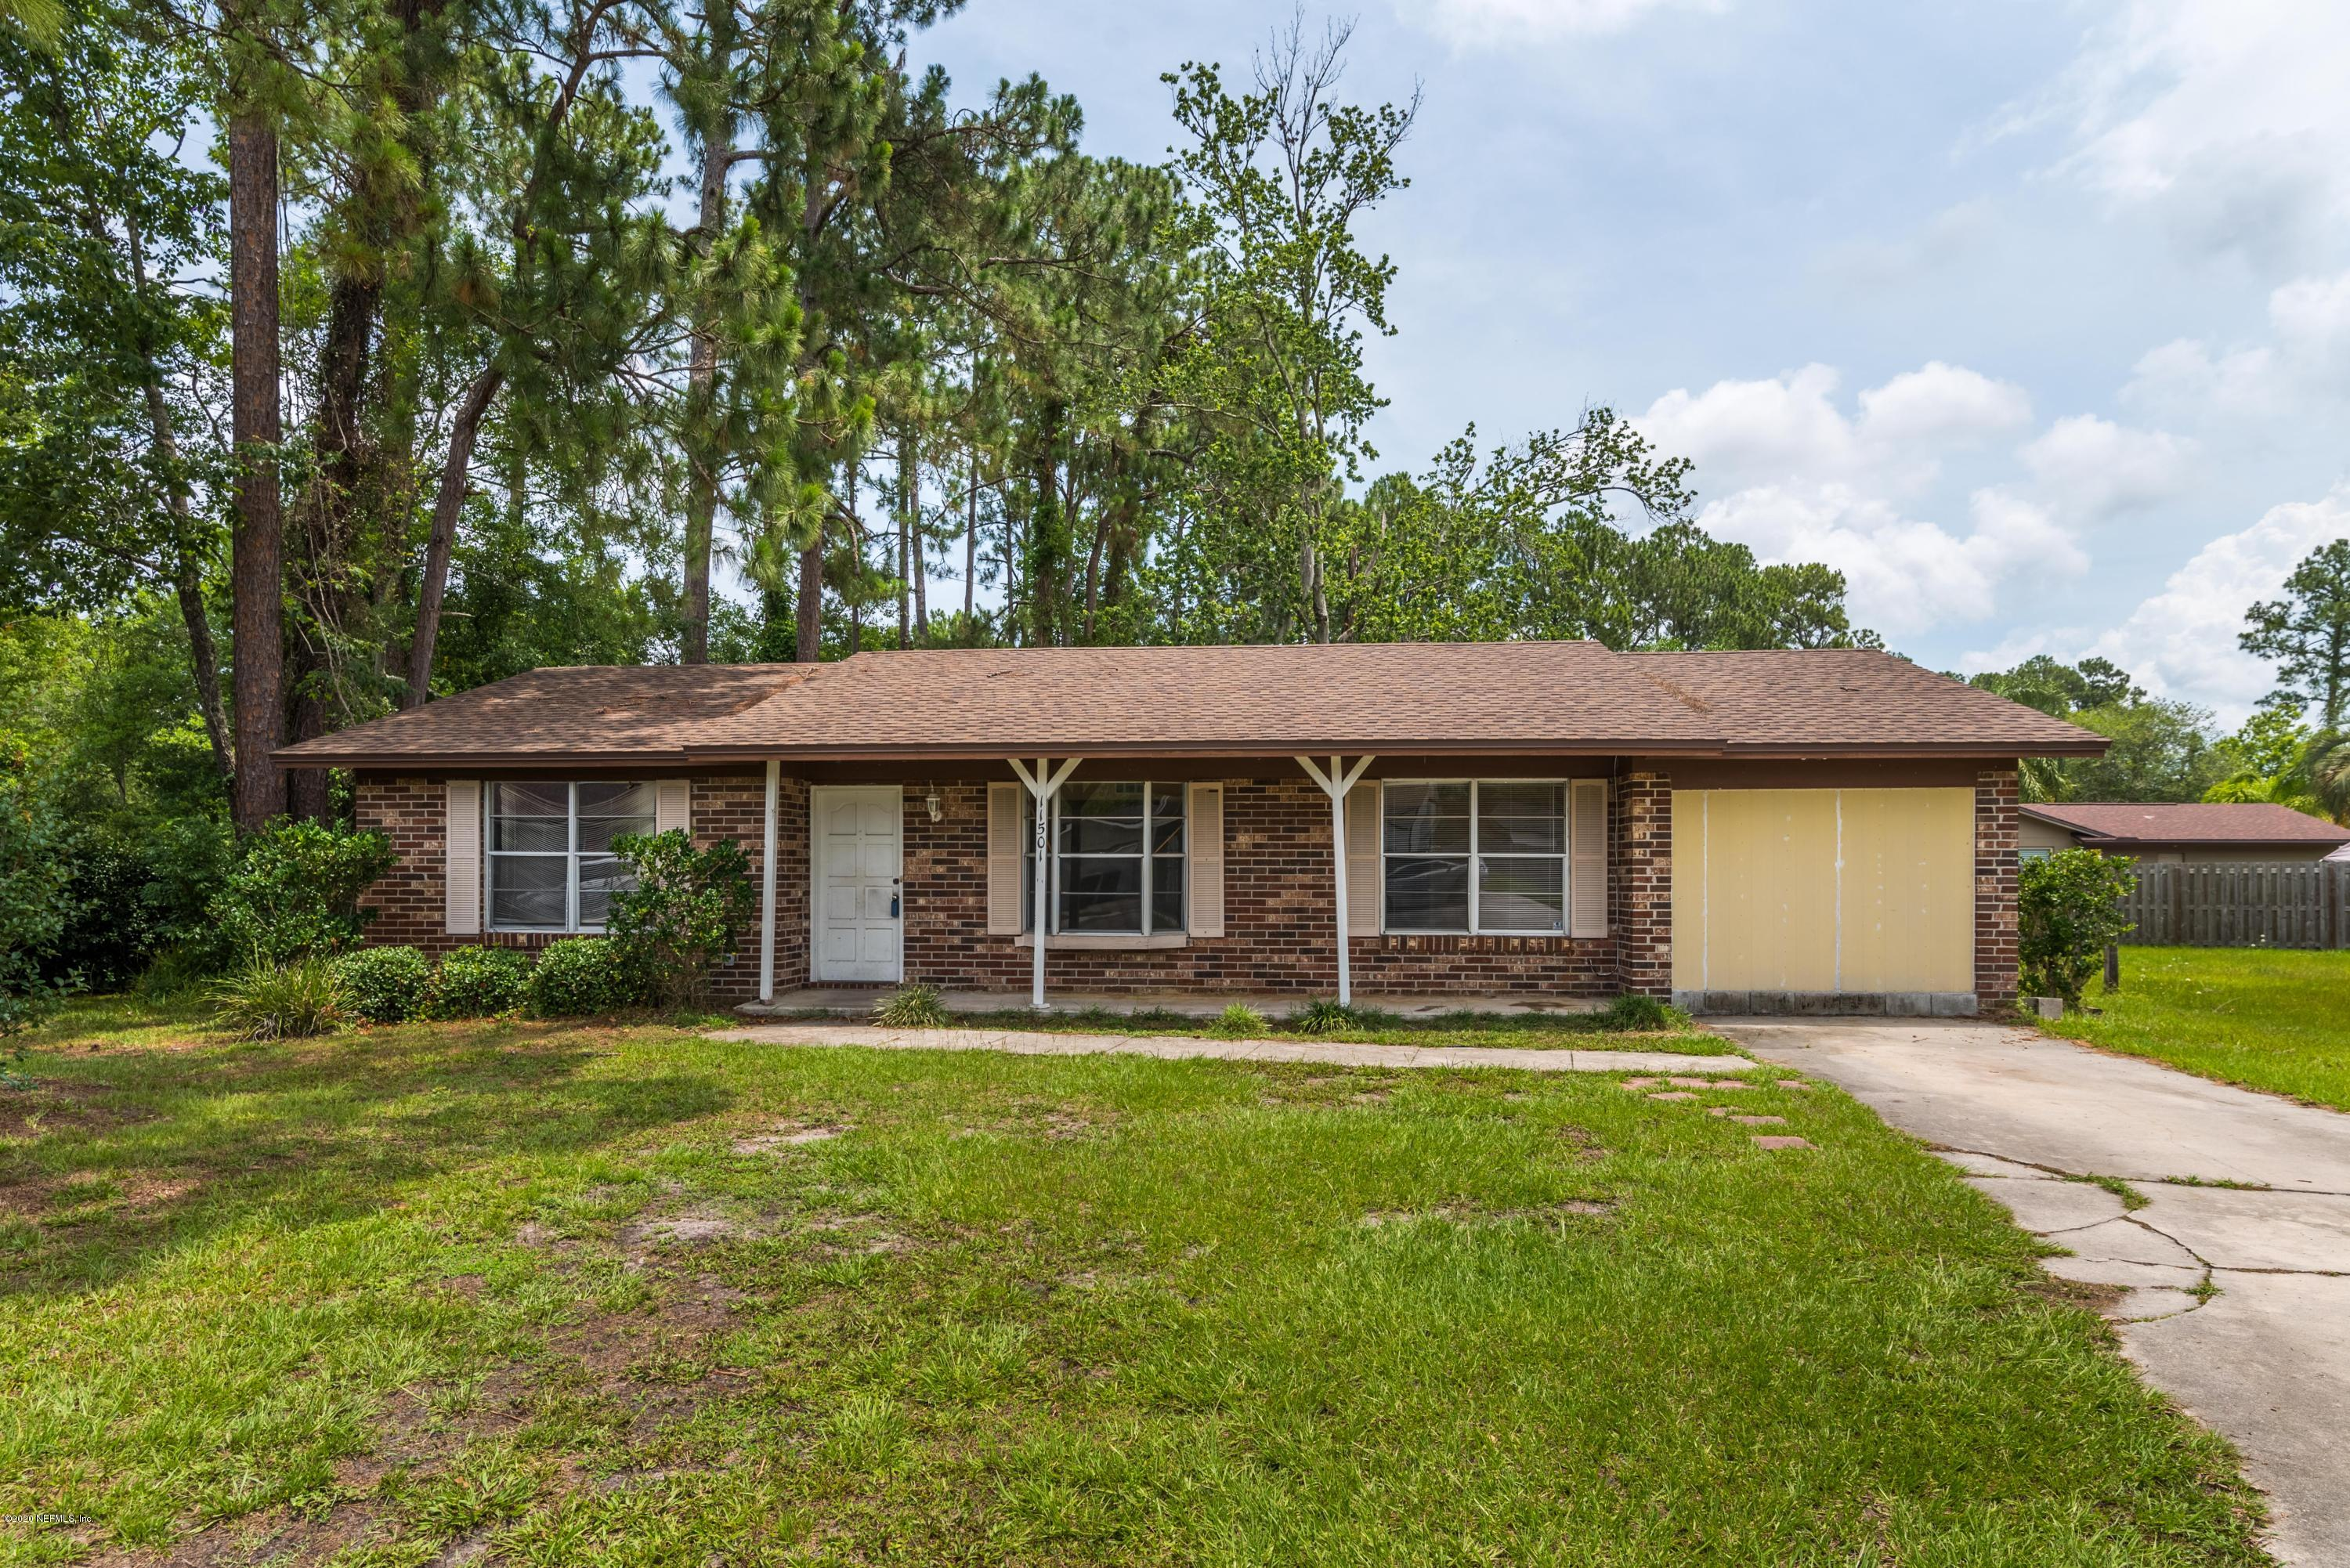 11501 KNOBBY, JACKSONVILLE, FLORIDA 32223, 3 Bedrooms Bedrooms, ,2 BathroomsBathrooms,Residential,For sale,KNOBBY,1055099